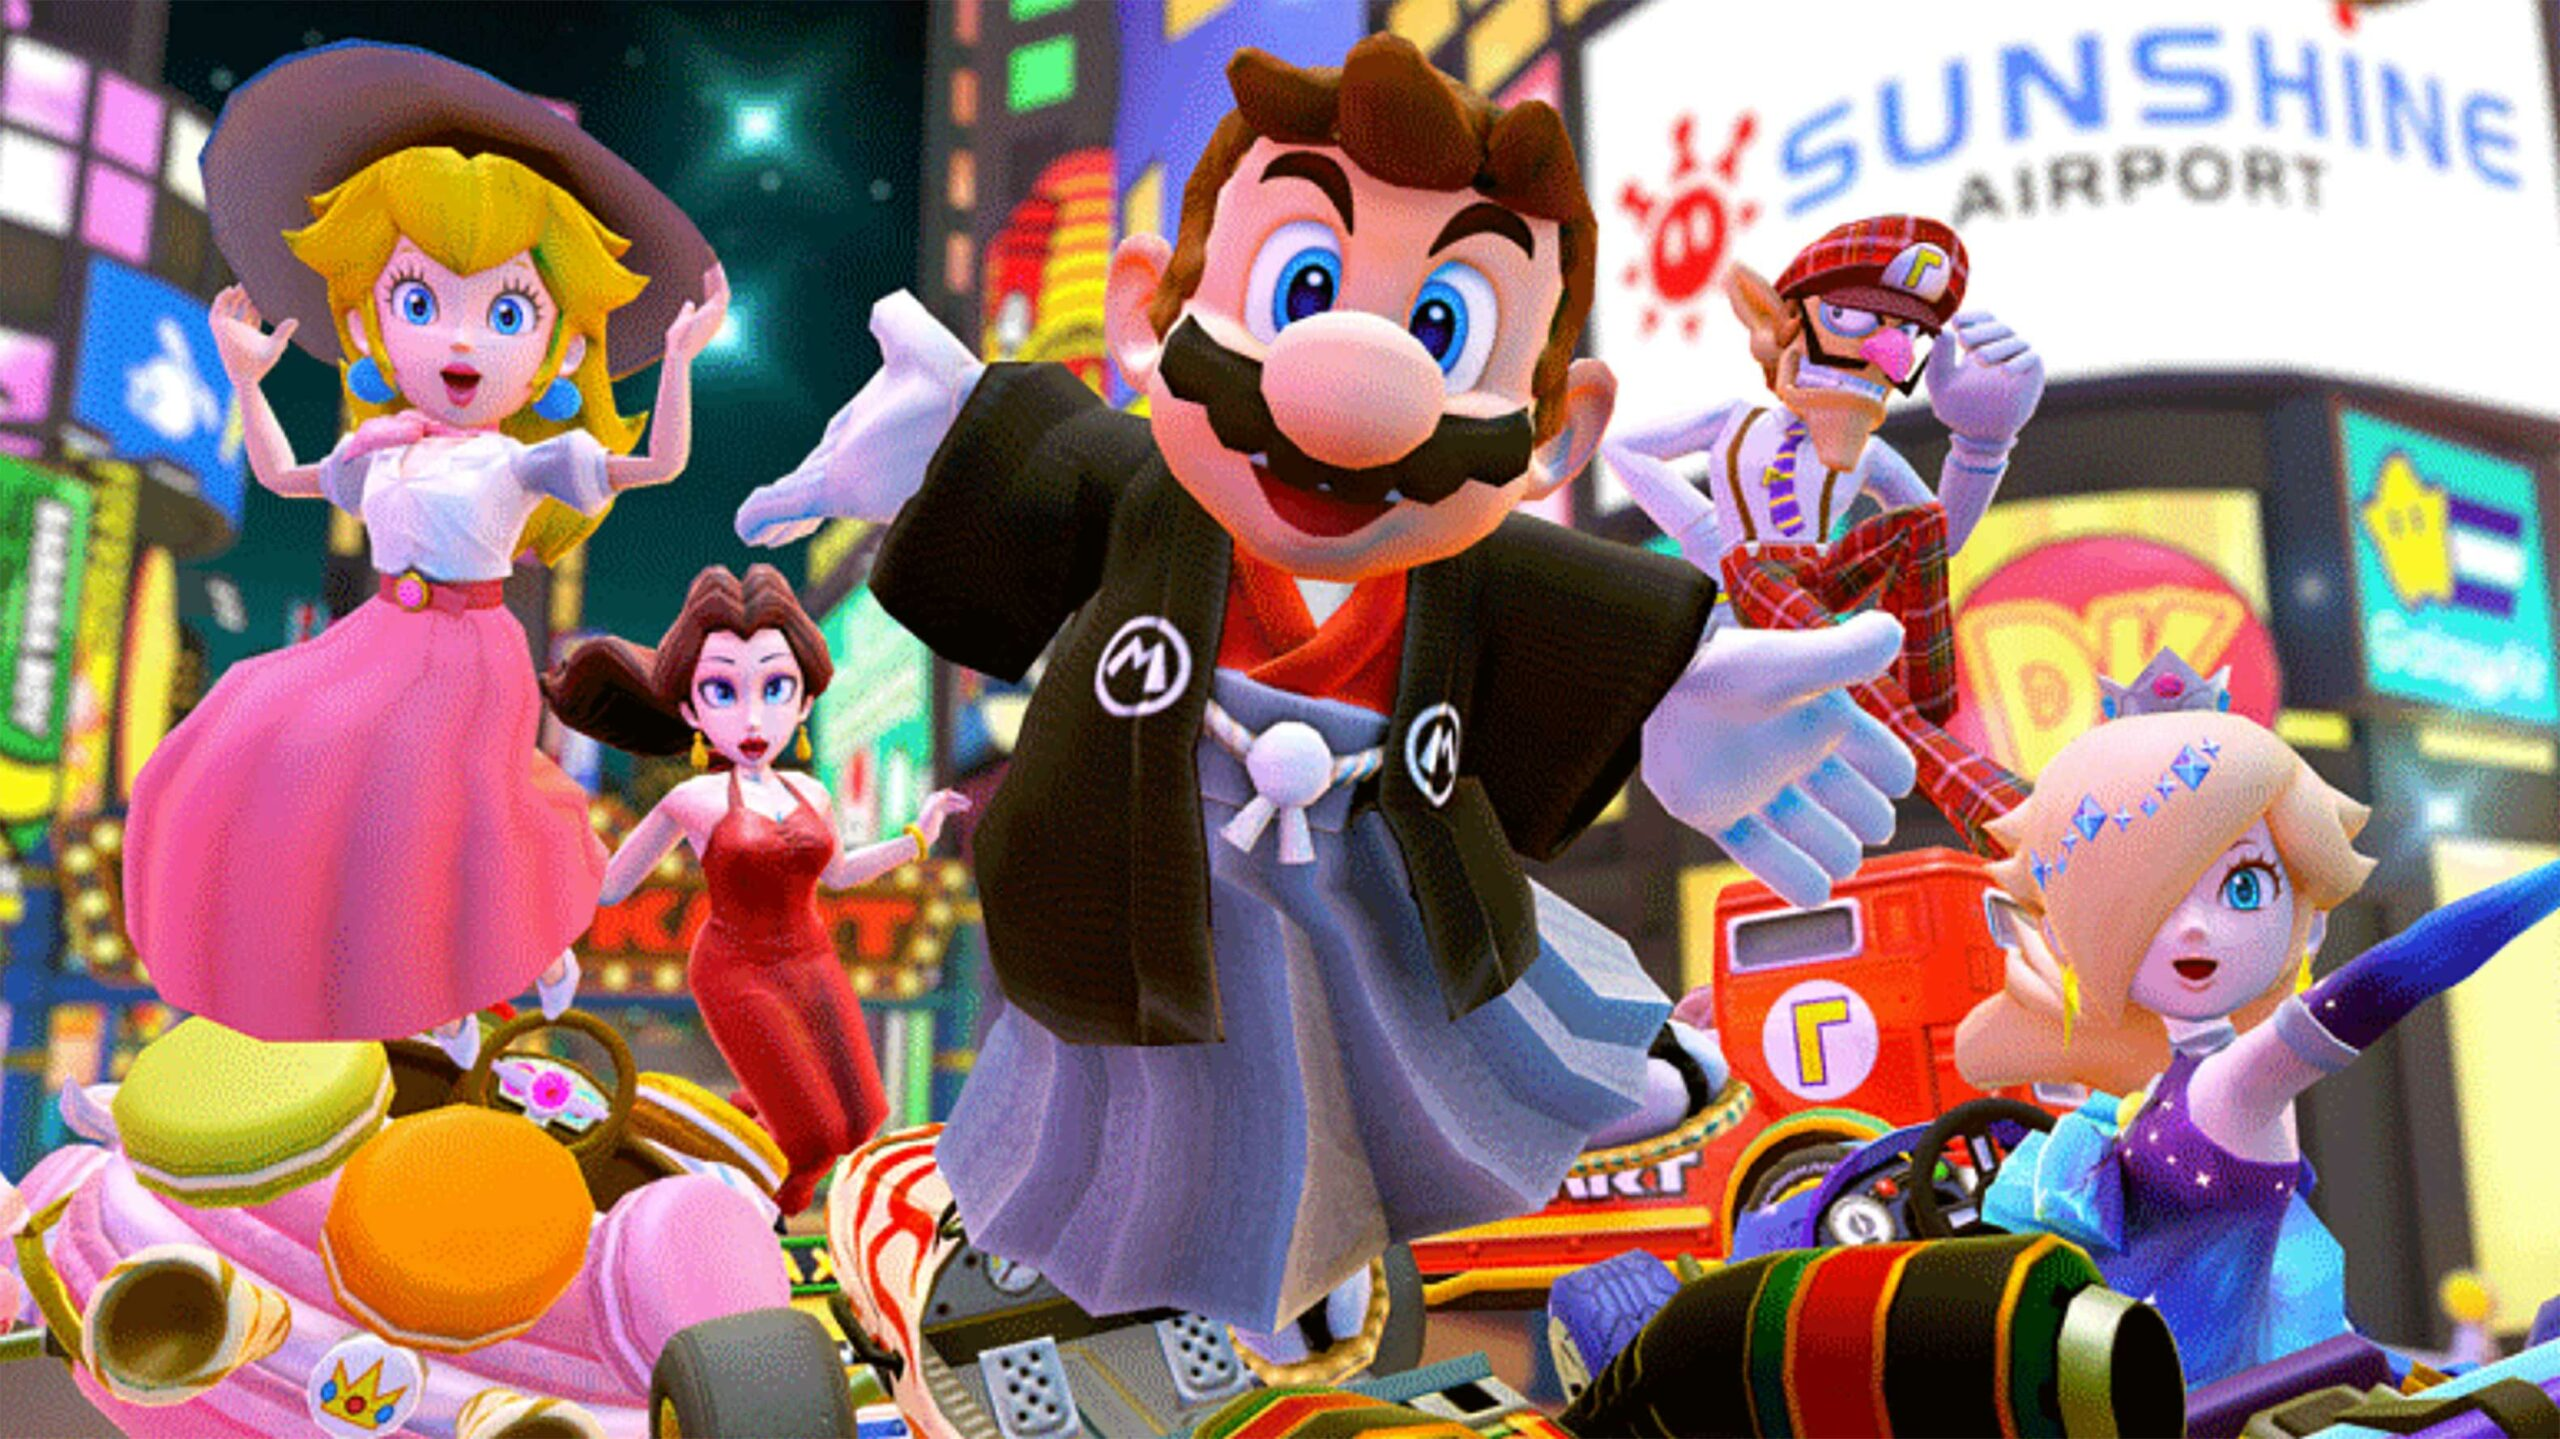 Nintendo Celebrates Mario Kart Tour One Year Anniversary With Limited Time Event